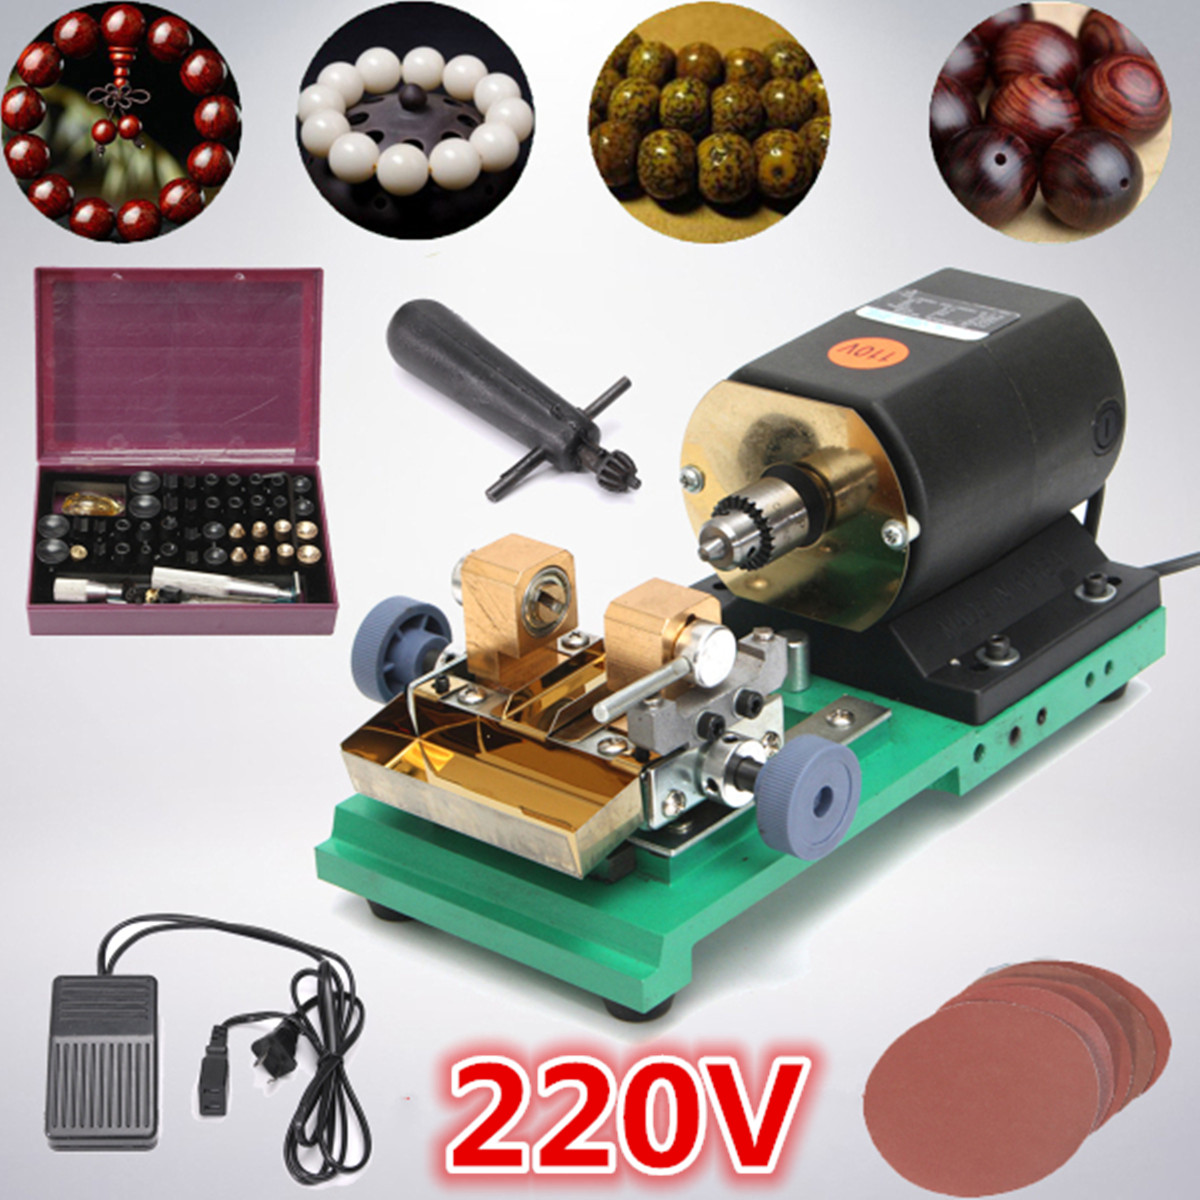 380W 220V Pearl Drilling Holing Machine Driller Full Set Jewelry Jade Driller Tools With Sanding Disc